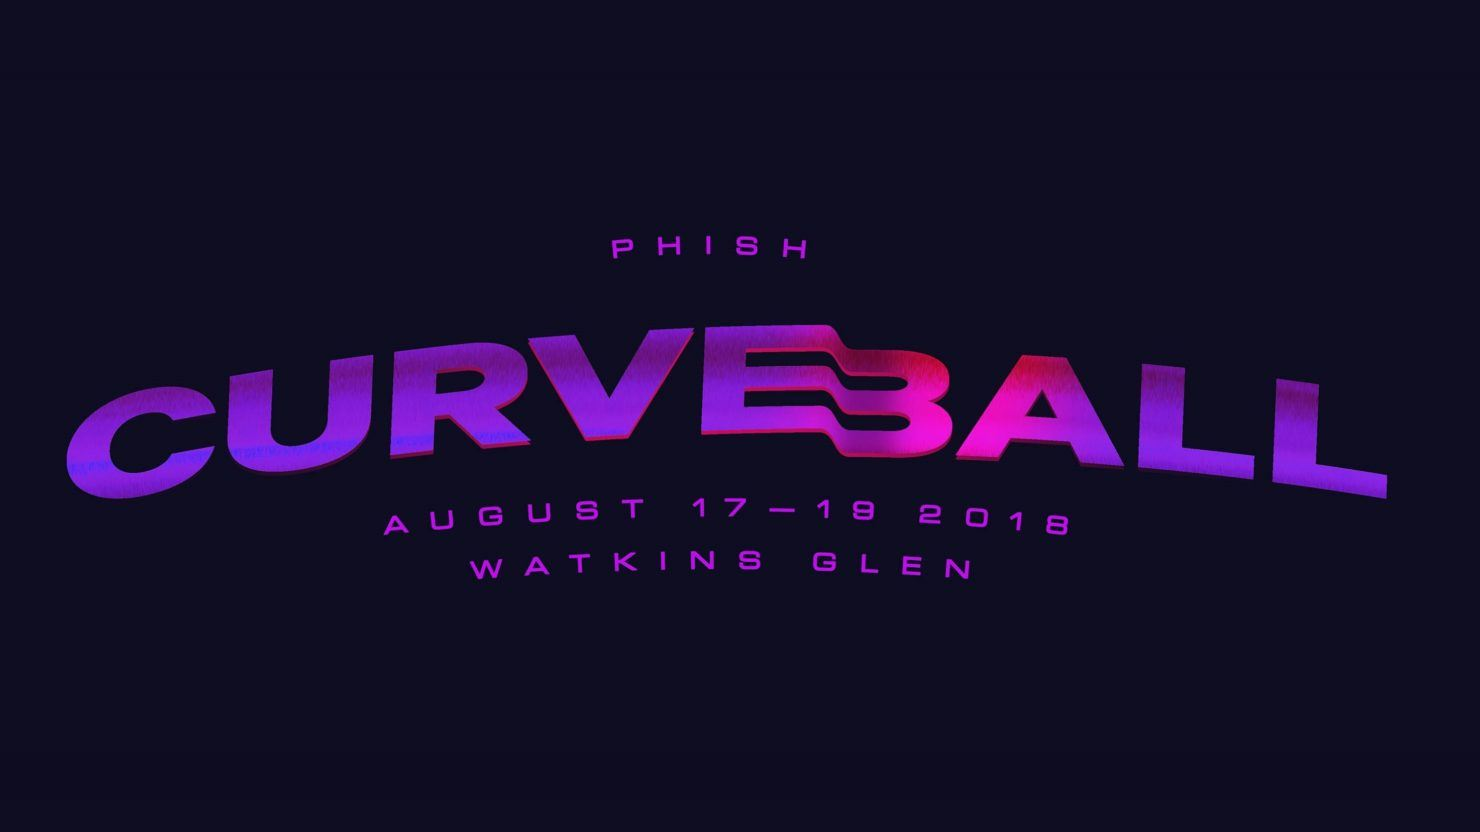 [UPDATED] New York State & County Officials Force Phish To Cancel Curveball